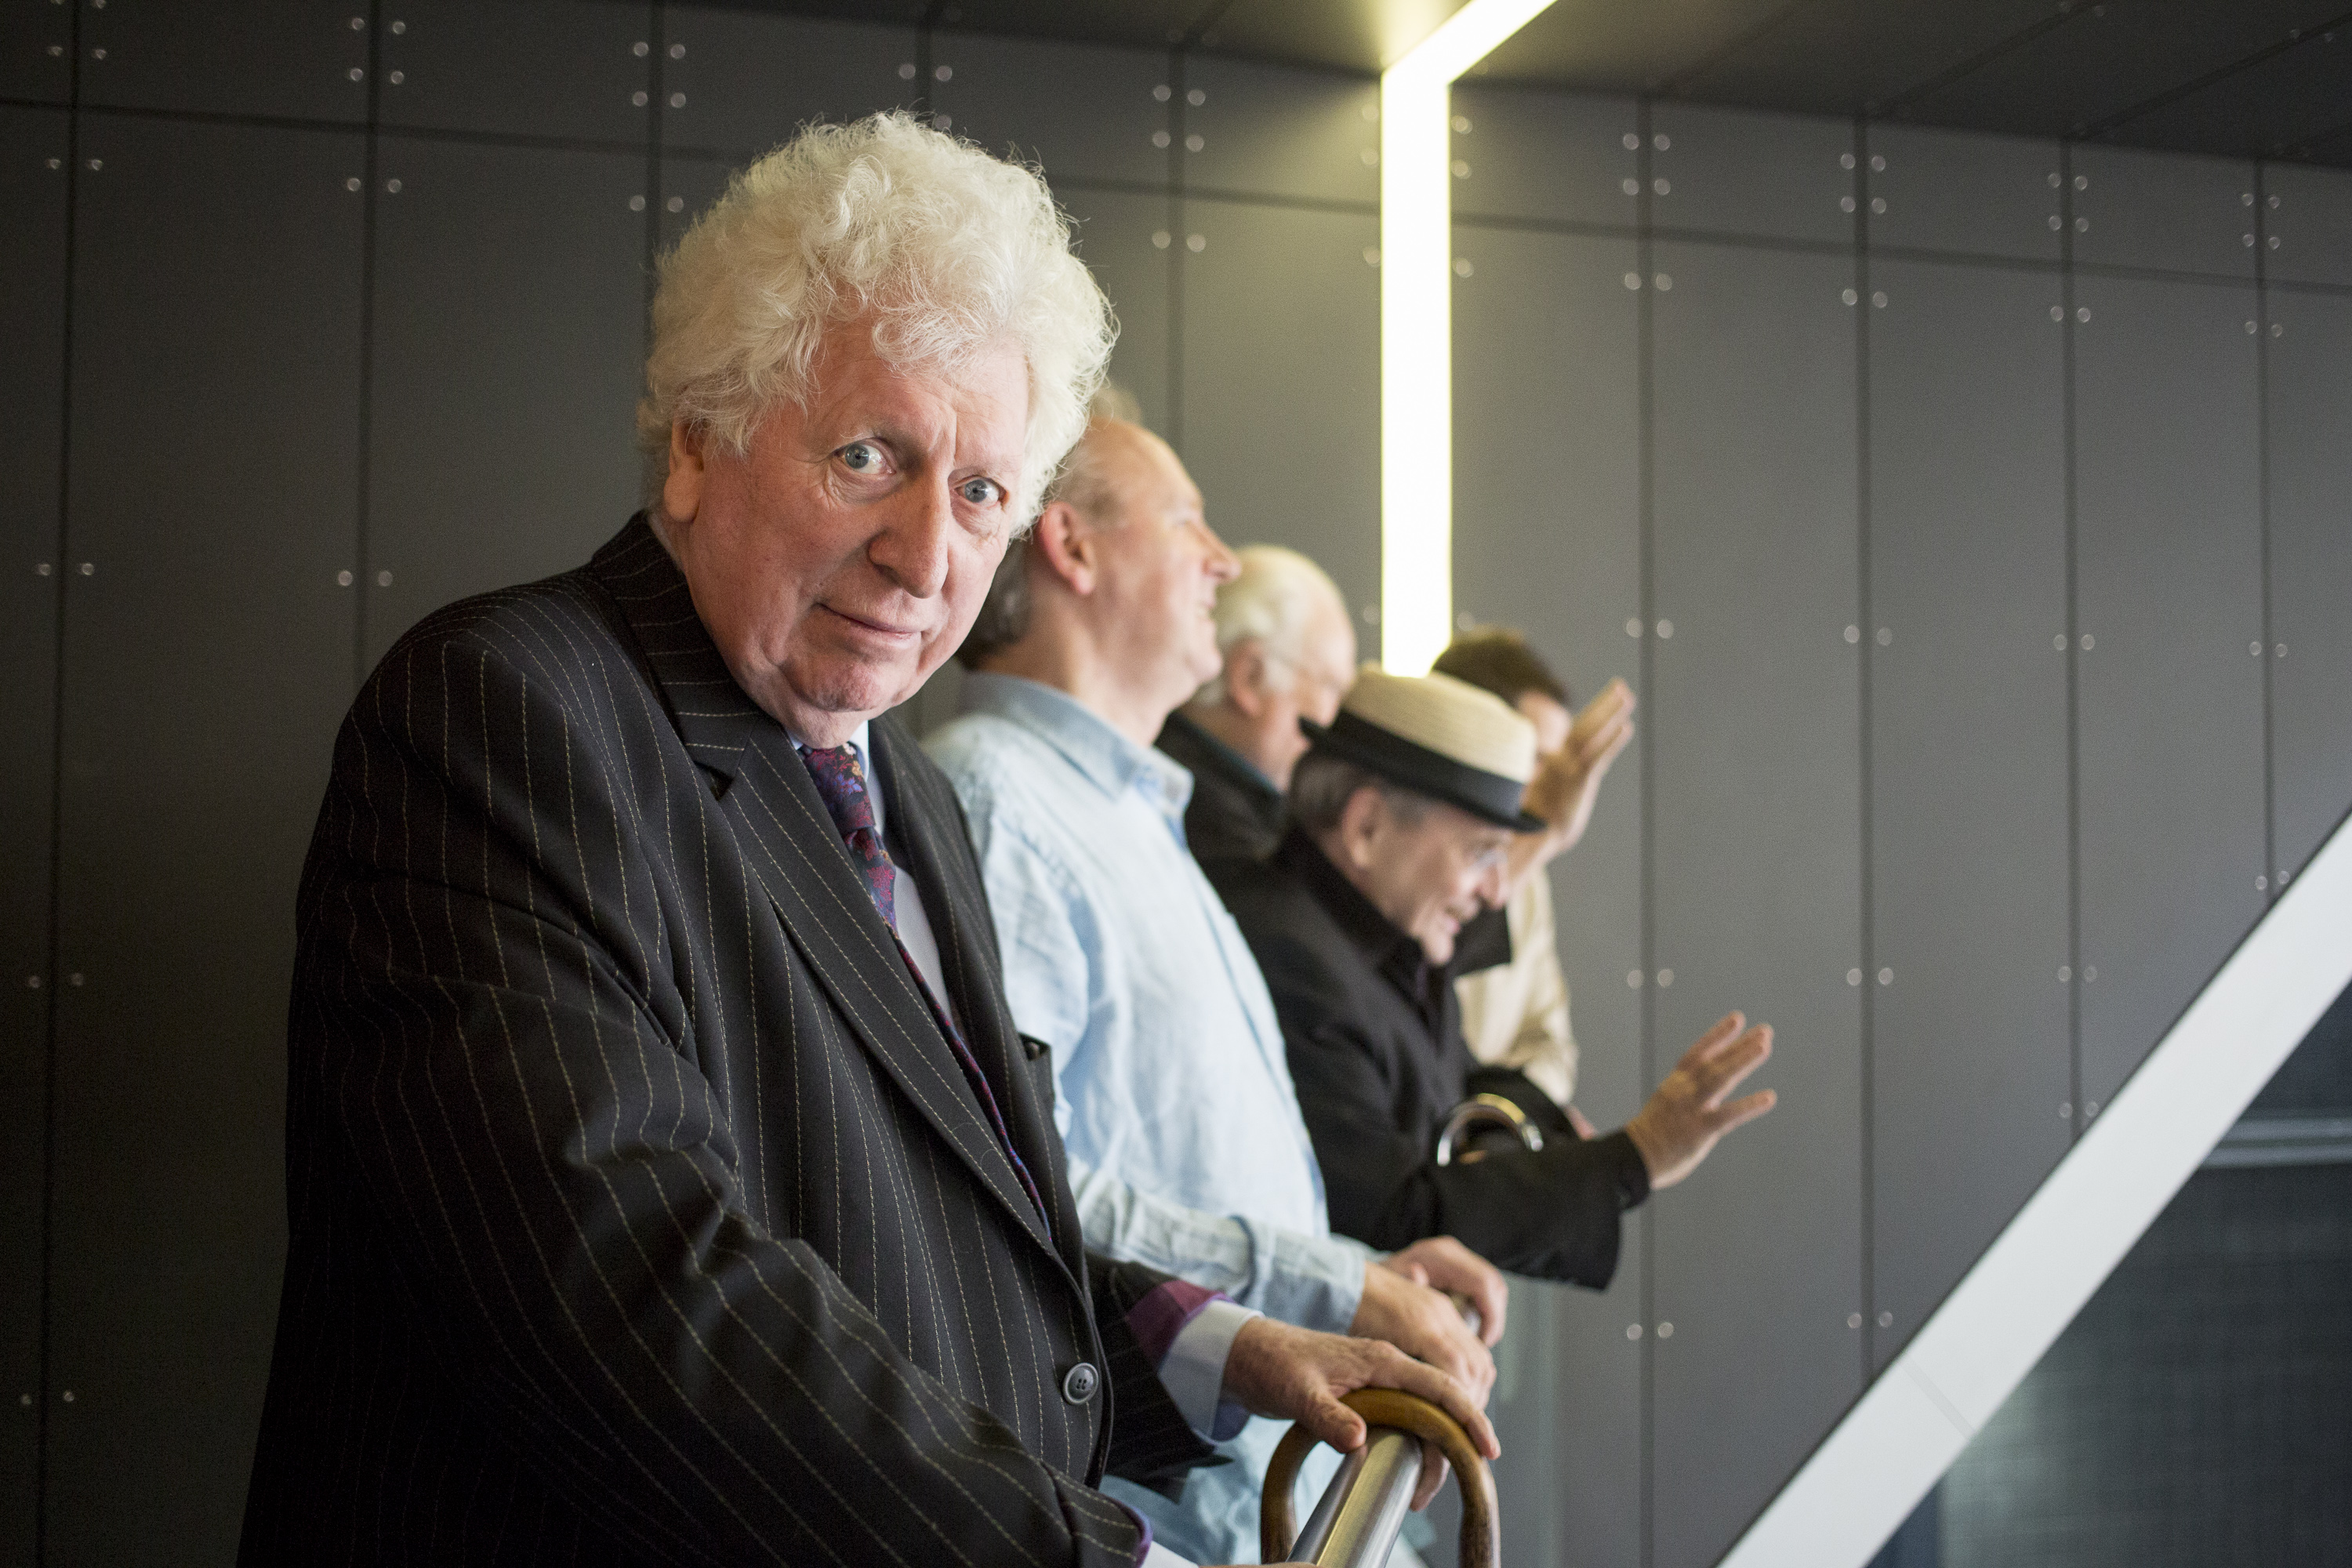 LONDON, ENGLAND - NOVEMBER 23:   Actor Tom Baker waits with four other previous Doctors from the classic series at the 'Doctor Who 50th Celebration' event in the ExCeL centre on November 22, 2013 in London, England. The sold-out three-day event in the ExCeL London convention centre celebrates 50 years of the show which has seen 11 actors play the role of Doctor Who and receives a worldwide cult following. Tom Baker played the role of the 'Doctor' from 1975 to 1981. (Photo by Dan Dennison/Getty Images)